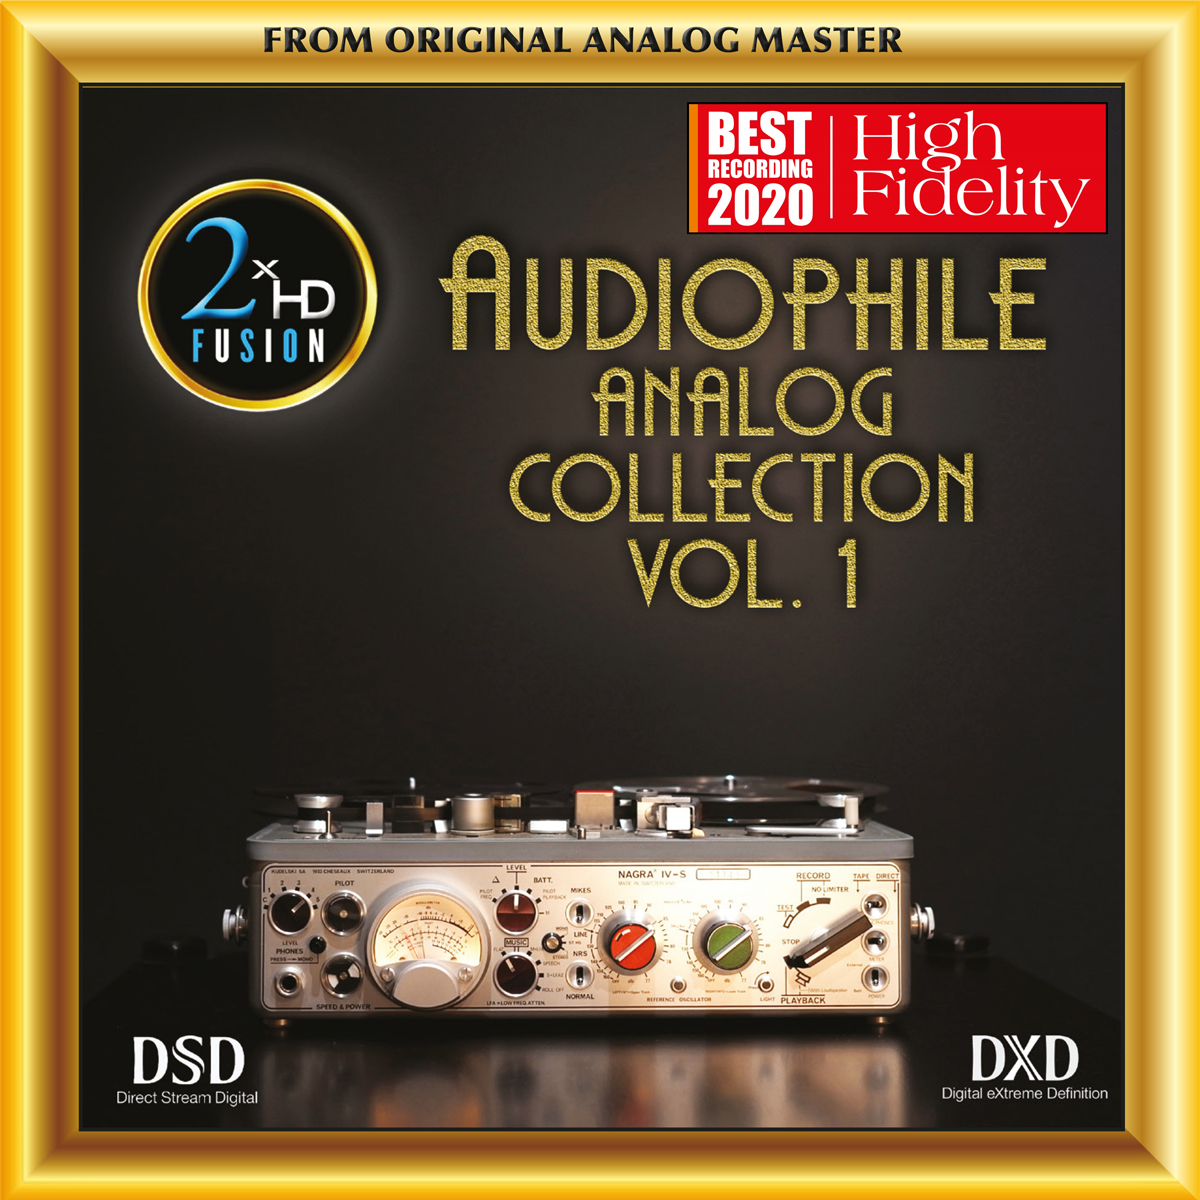 Audiophile Analog Collection Volume 1